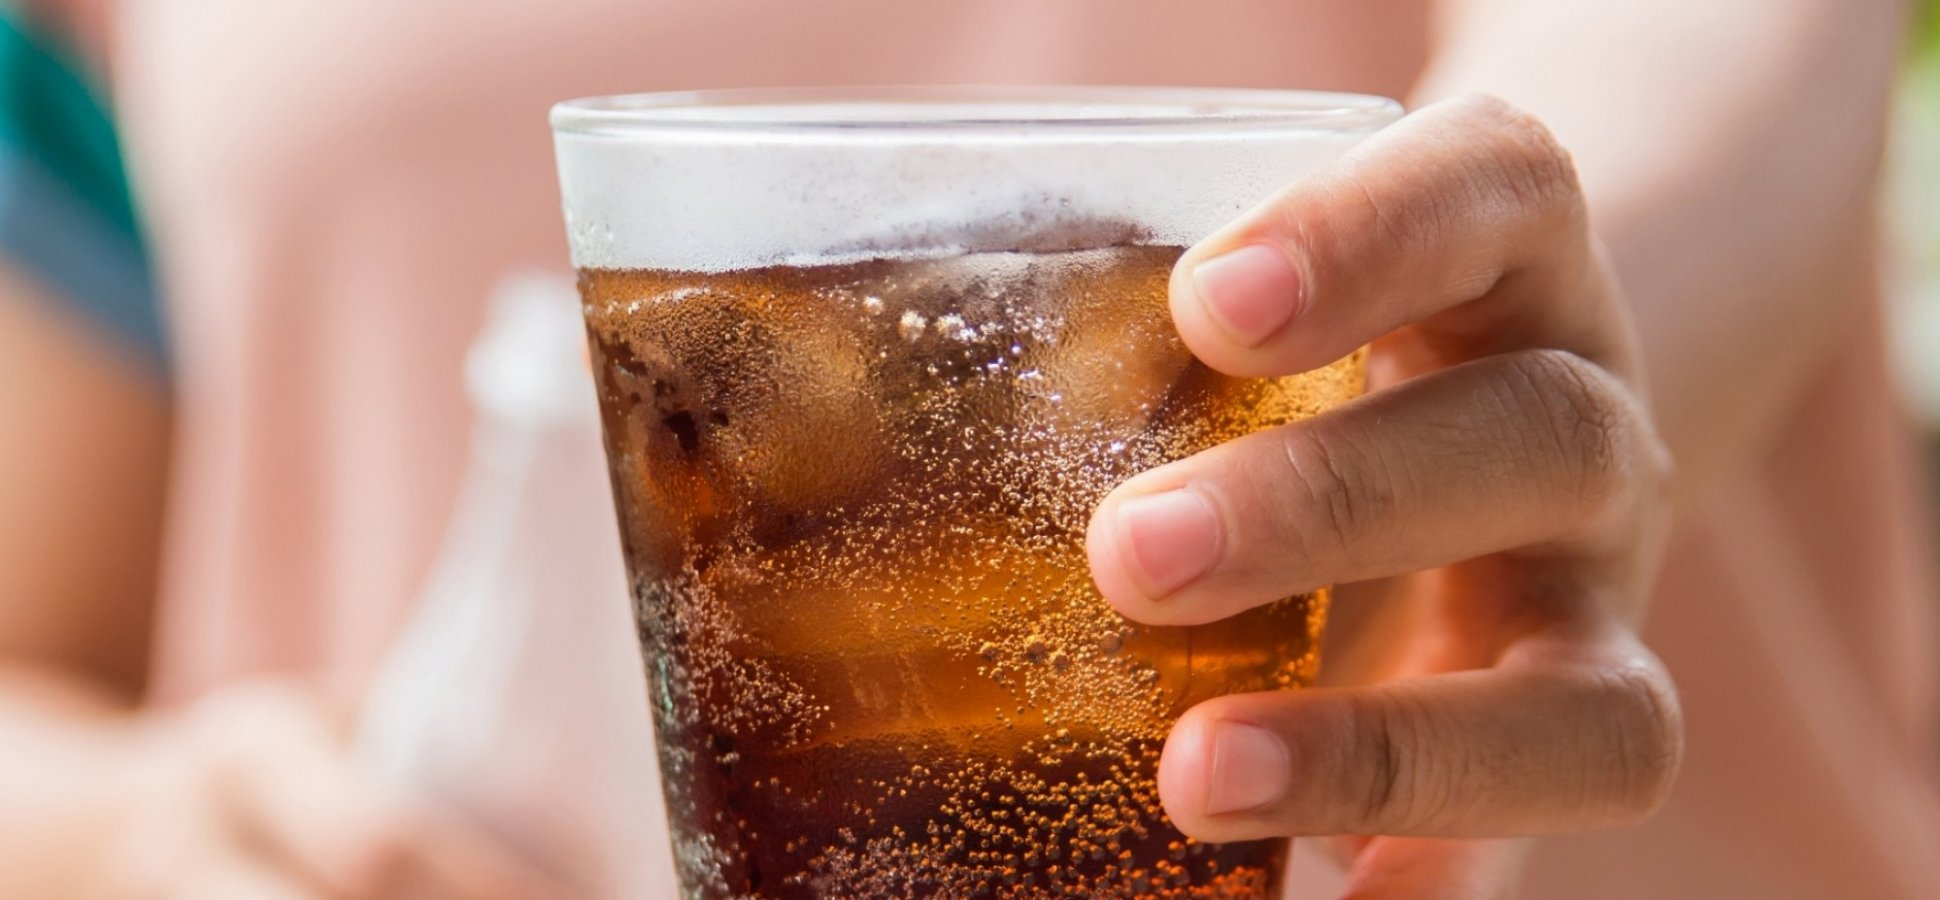 Here's the Science That Explains Why Drinking Diet Soda Makes You Gain Weight